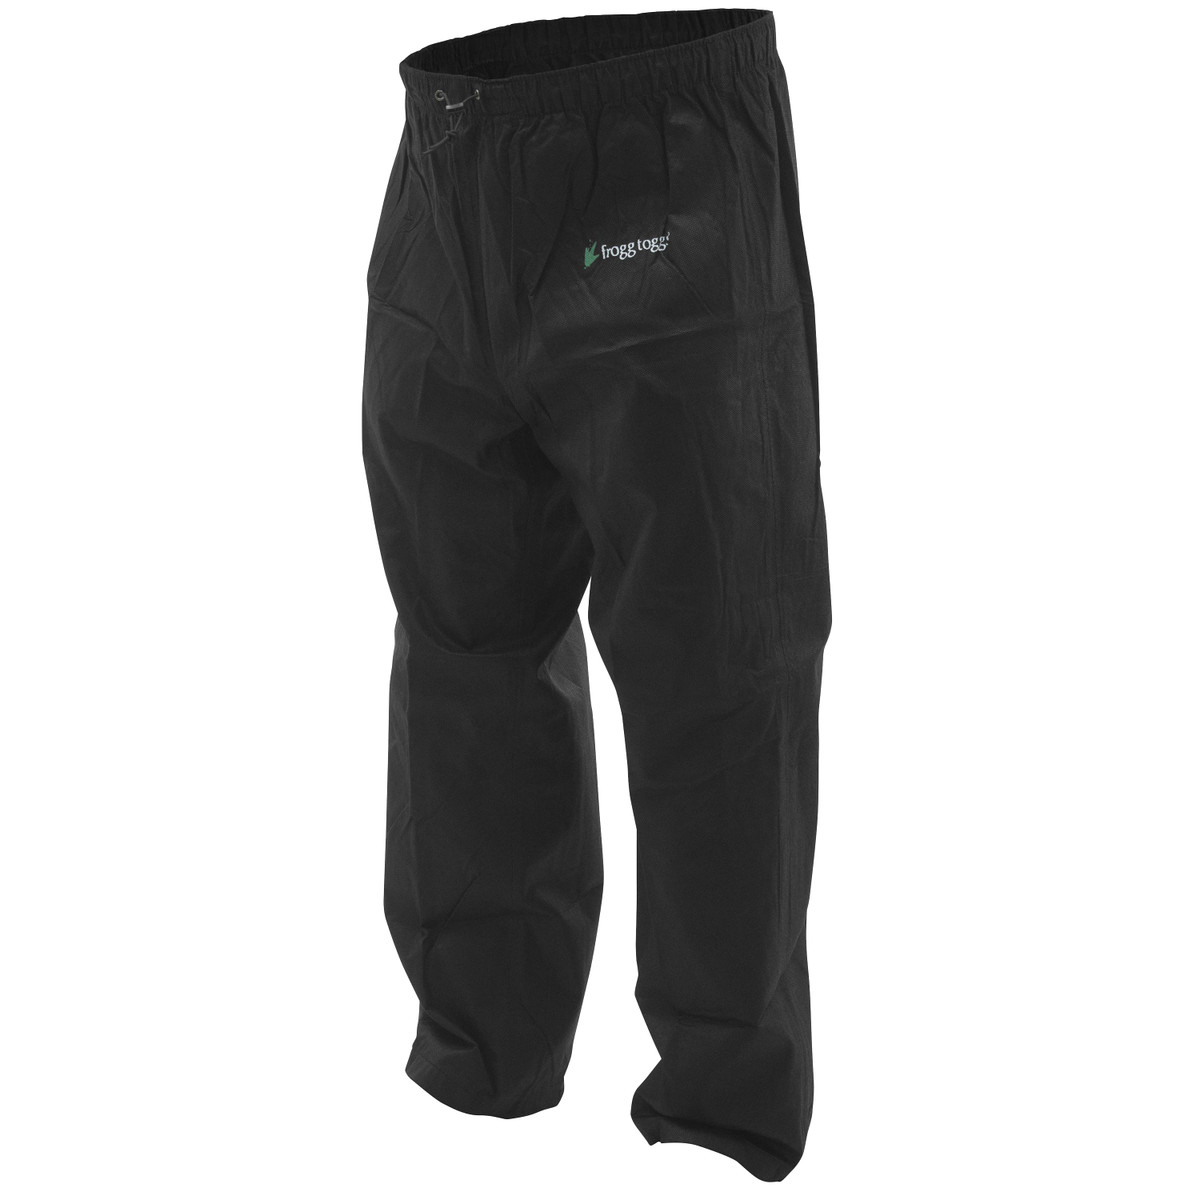 Frogg Toggs Men's Pro Action Pants